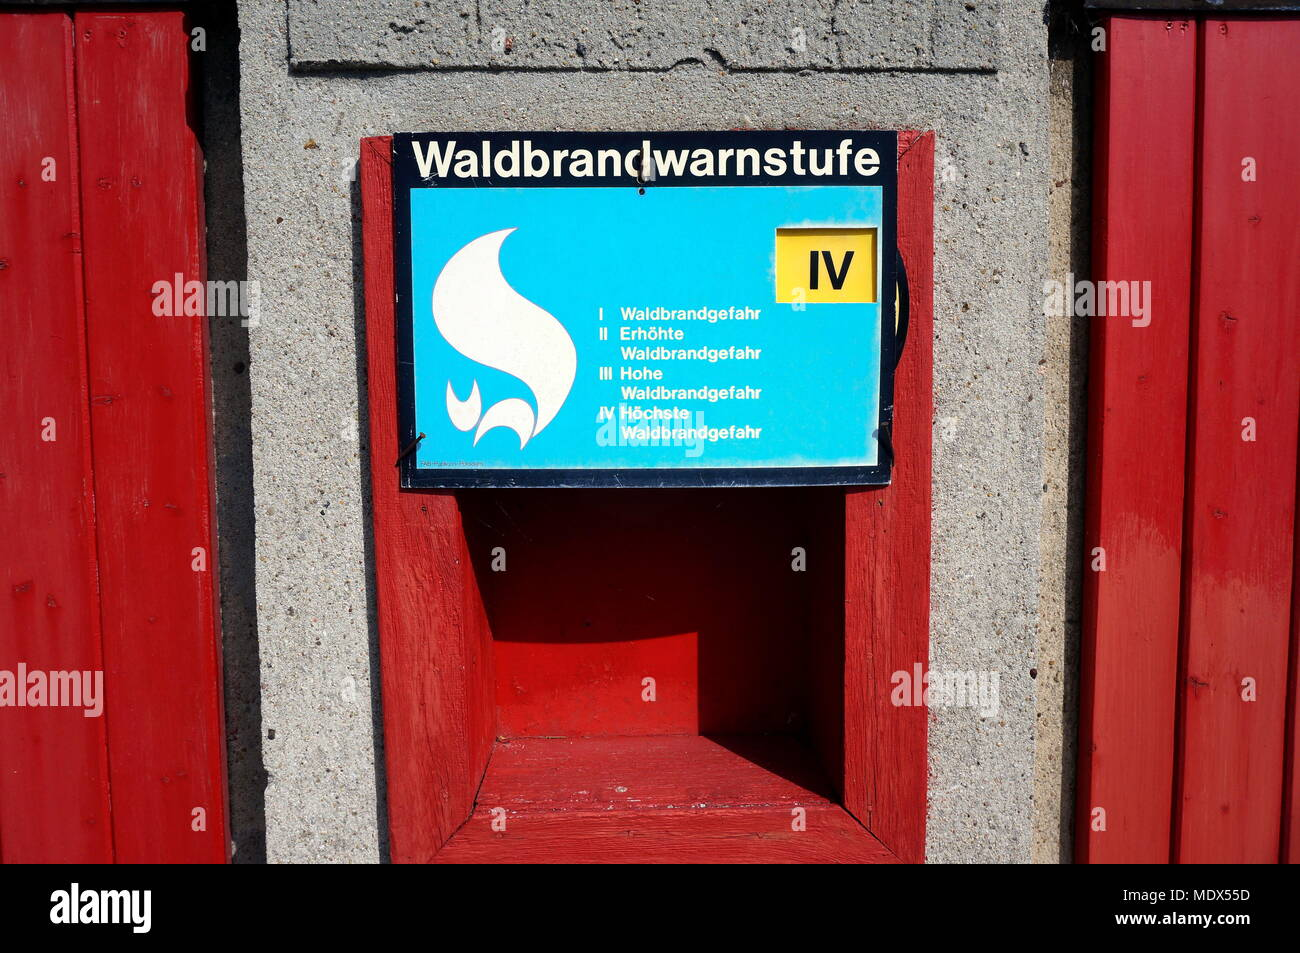 Linthe, Deutschland. 09th June, 2015. A sign of the Waldbrandwarnstufe of the volunteer fire department in the district of German Bork in Linthe indicates the highest level of forest fire danger, recorded on 09.06.2015. Credit: S. Steiafter - ATTENTION! NO BILDFUNK UTILIZATION - | usage worldwide/dpa/Alamy Live News - Stock Image